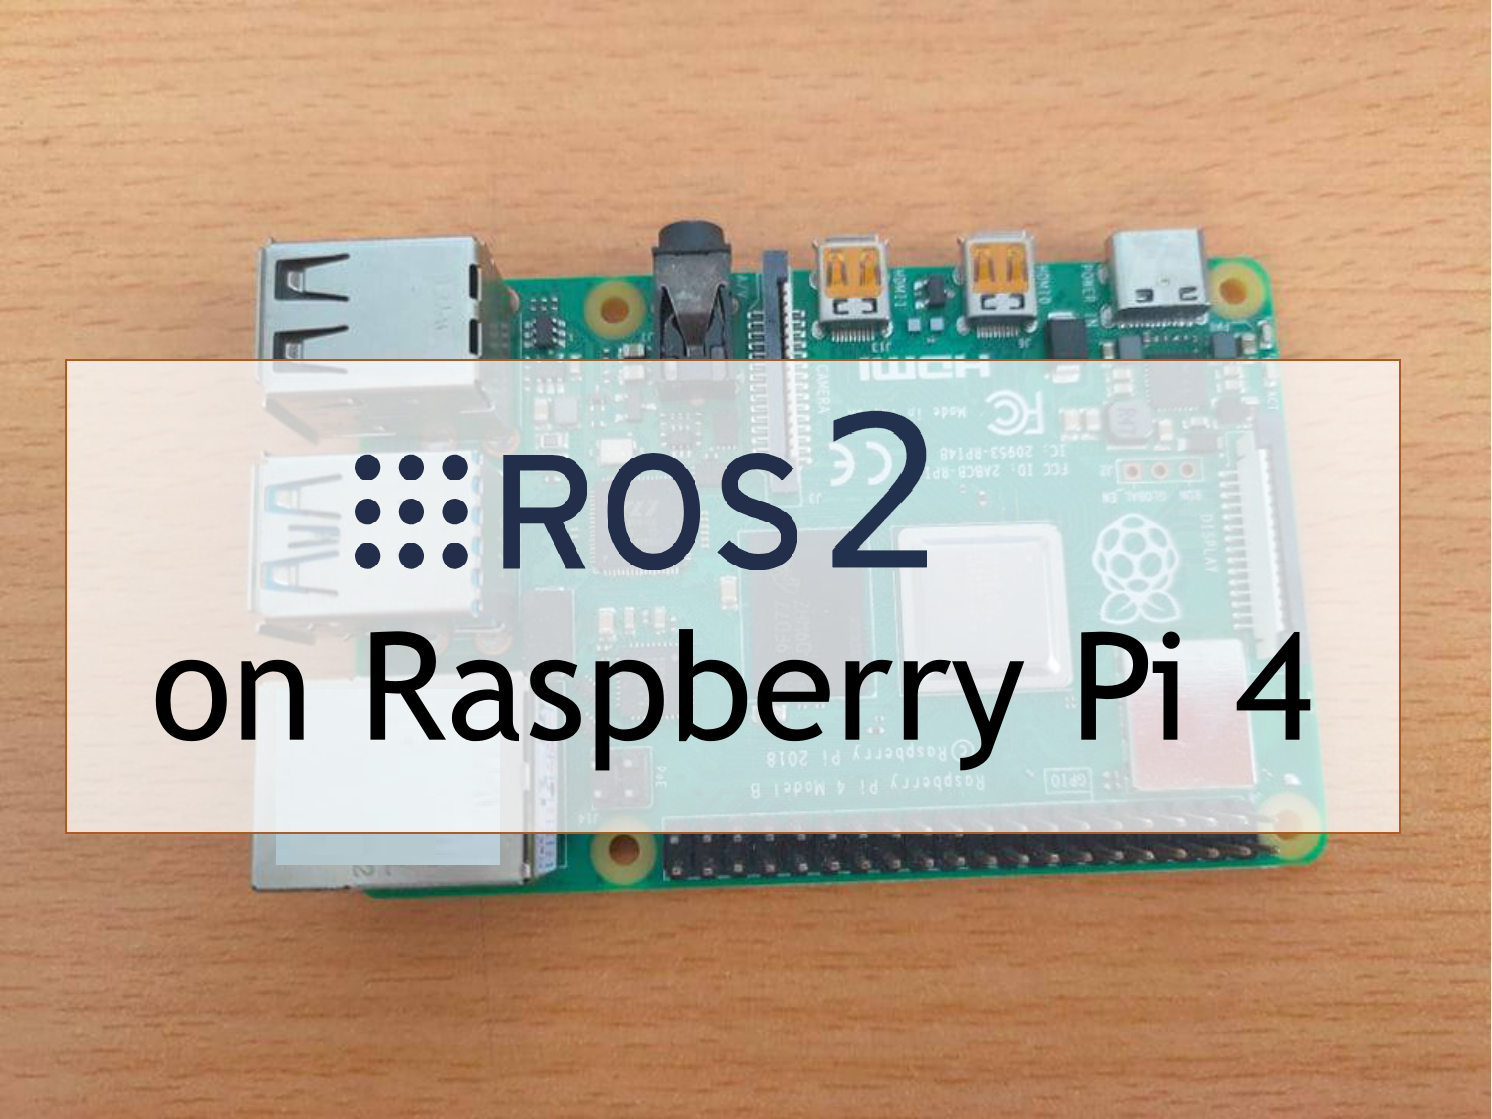 Install ROS 2 on Raspberry Pi 4 (SD card image available)